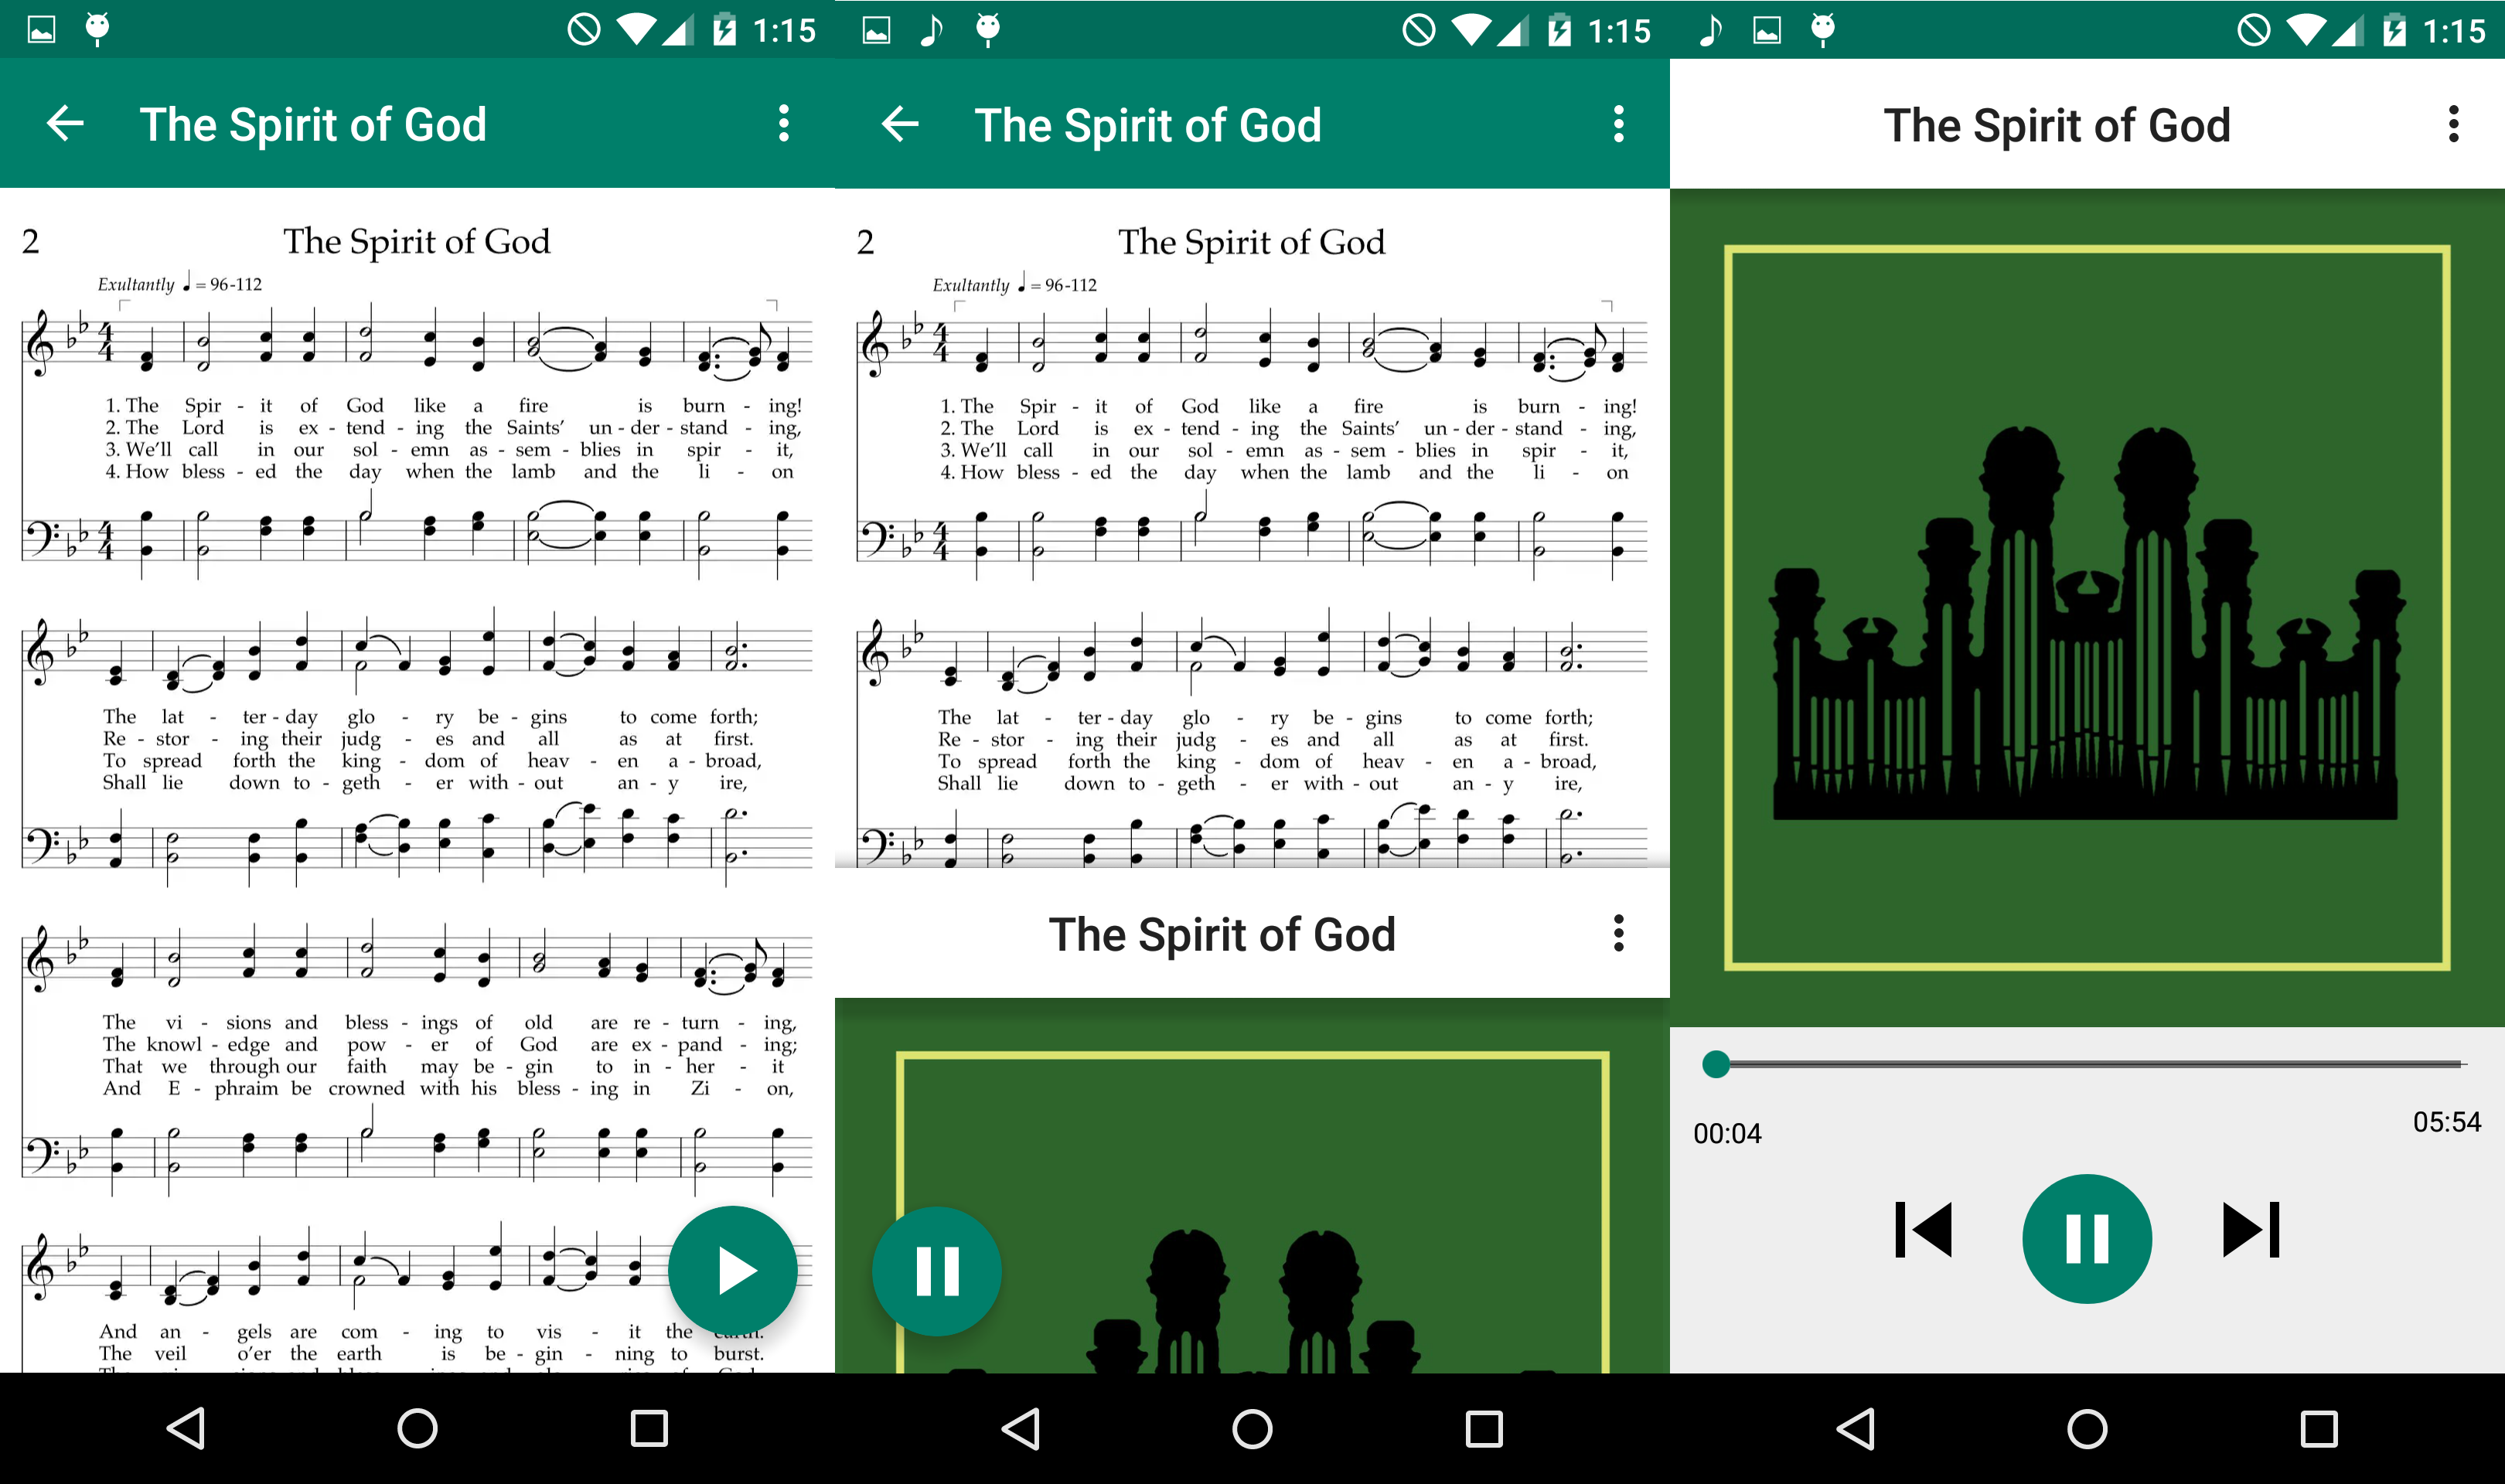 Mormon Church Finally Releases LDS Music App for Android